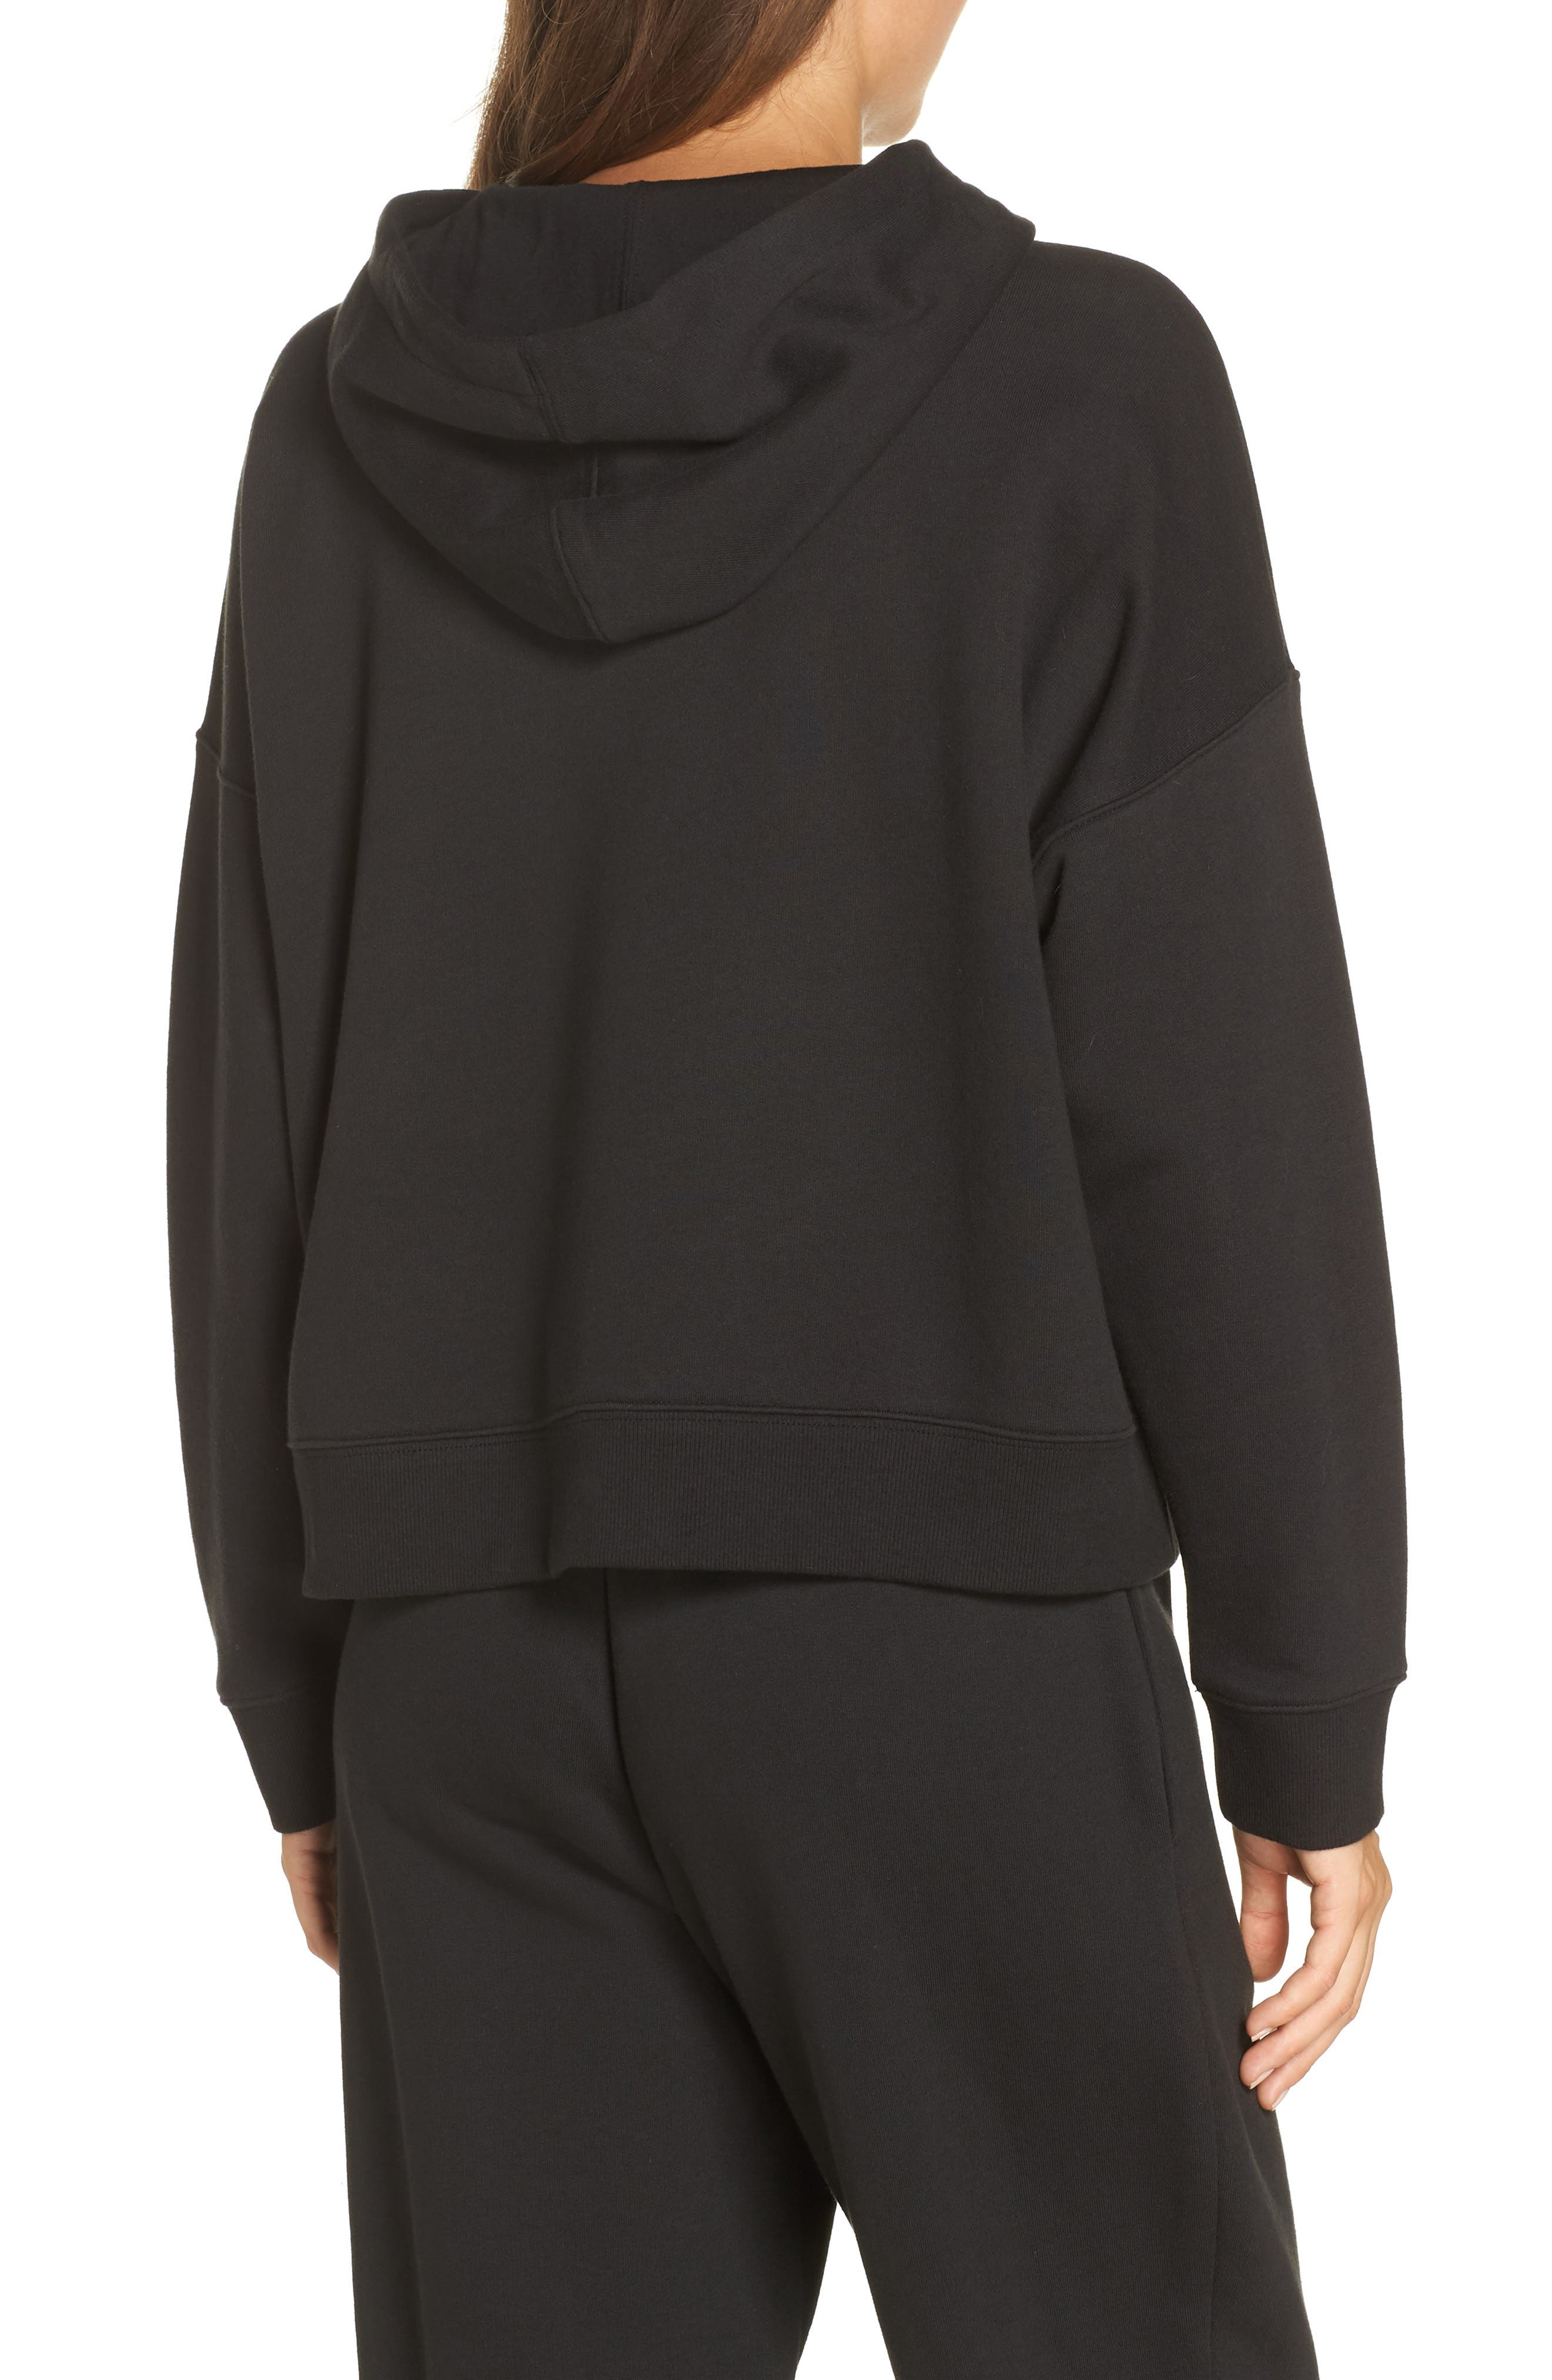 CALVIN KLEIN,                             Monogram Lounge Hoodie,                             Alternate thumbnail 2, color,                             001